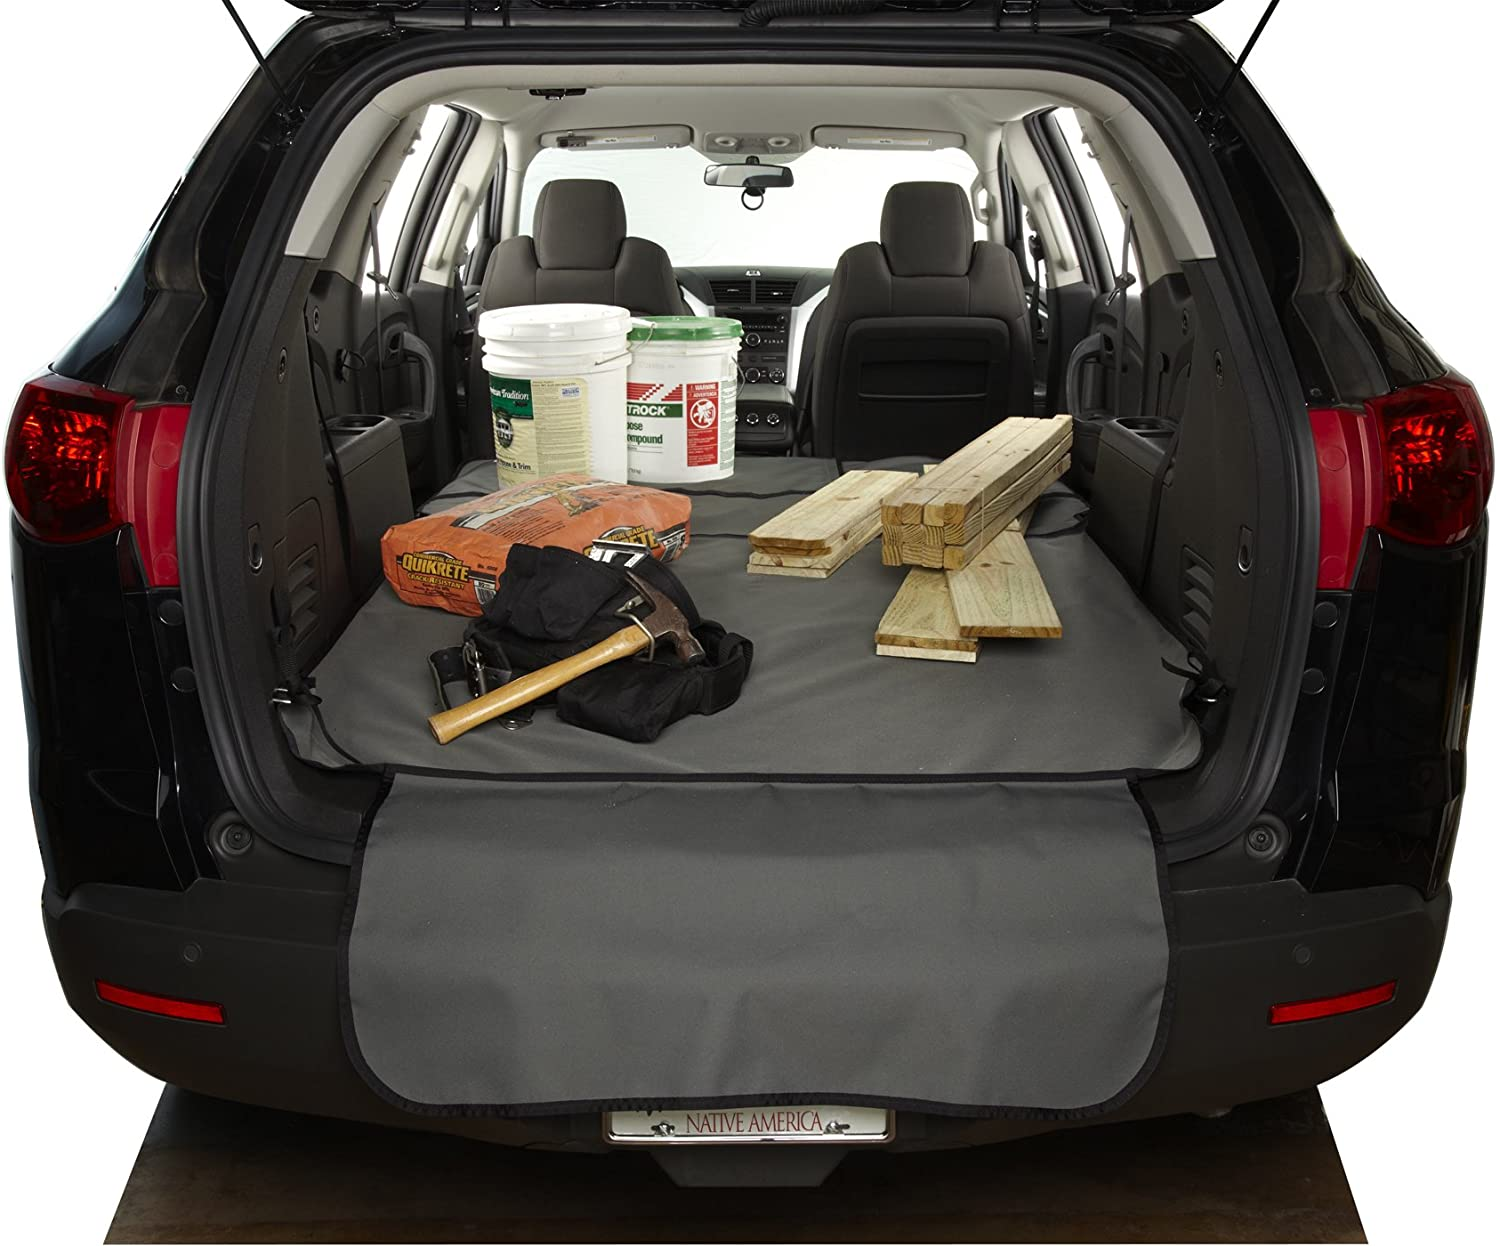 Covercraft Custom Fit Cargo Liner for Select Nissan Versa Models - Polycotton (Grey)